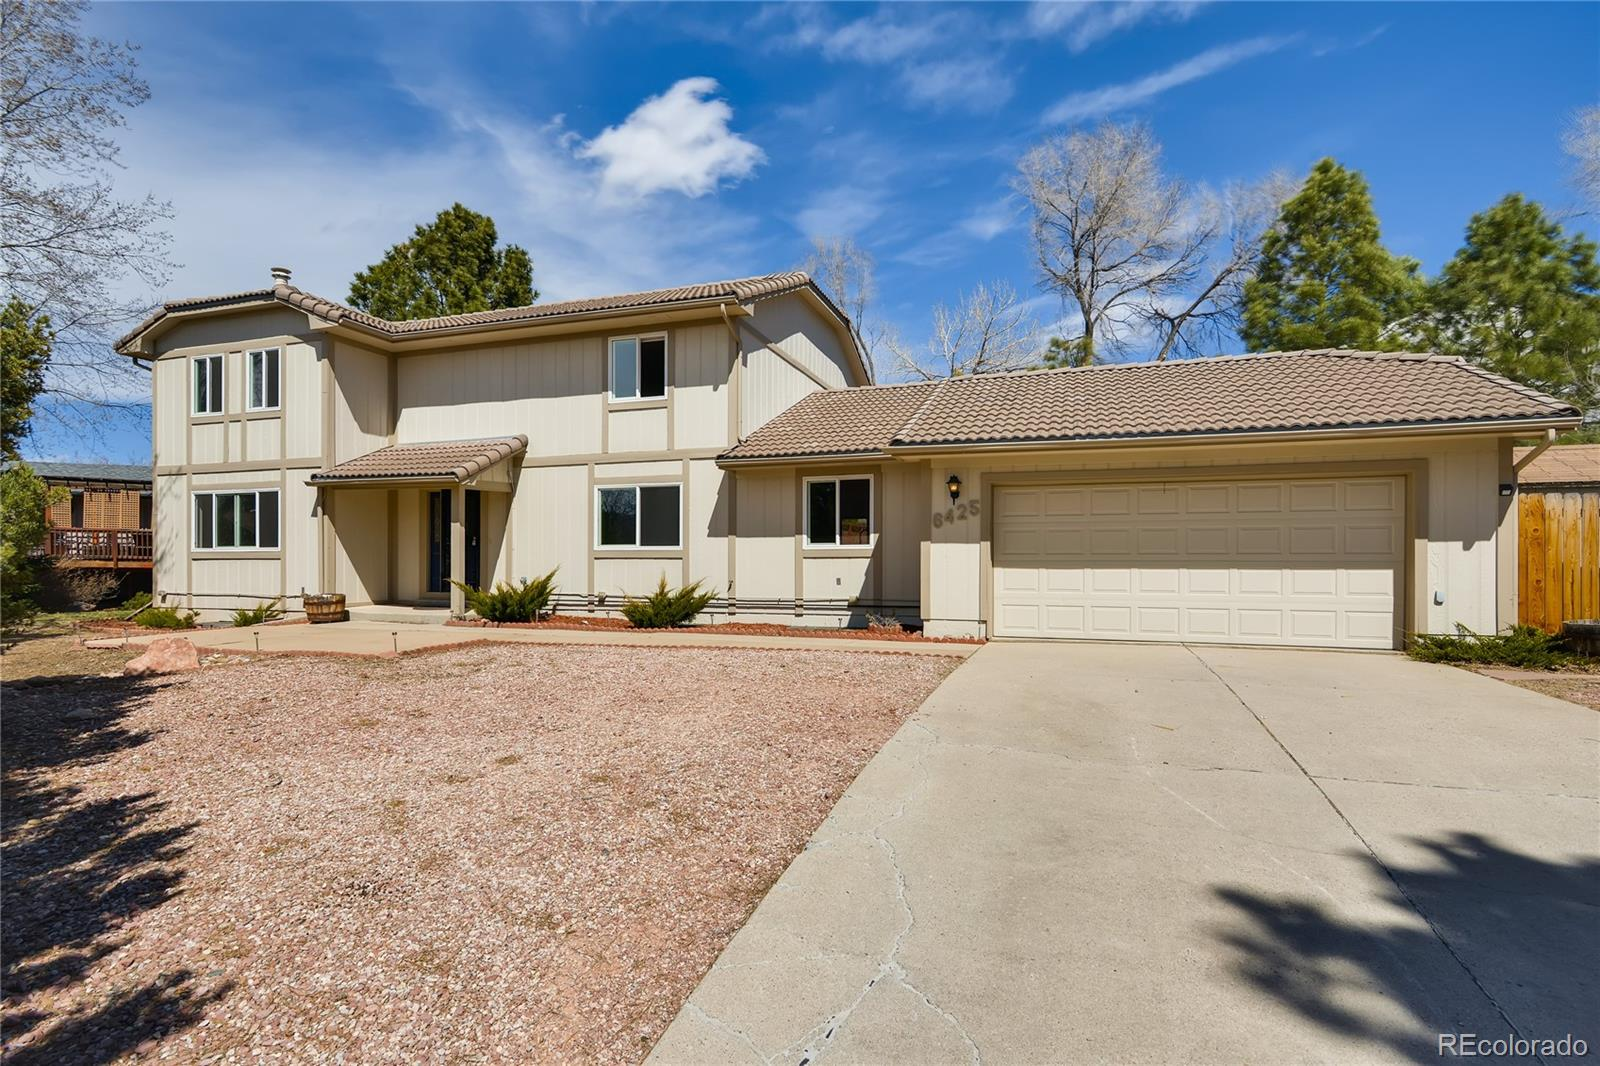 6425 Delmonico Drive, Colorado Springs, CO 80919 - Colorado Springs, CO real estate listing